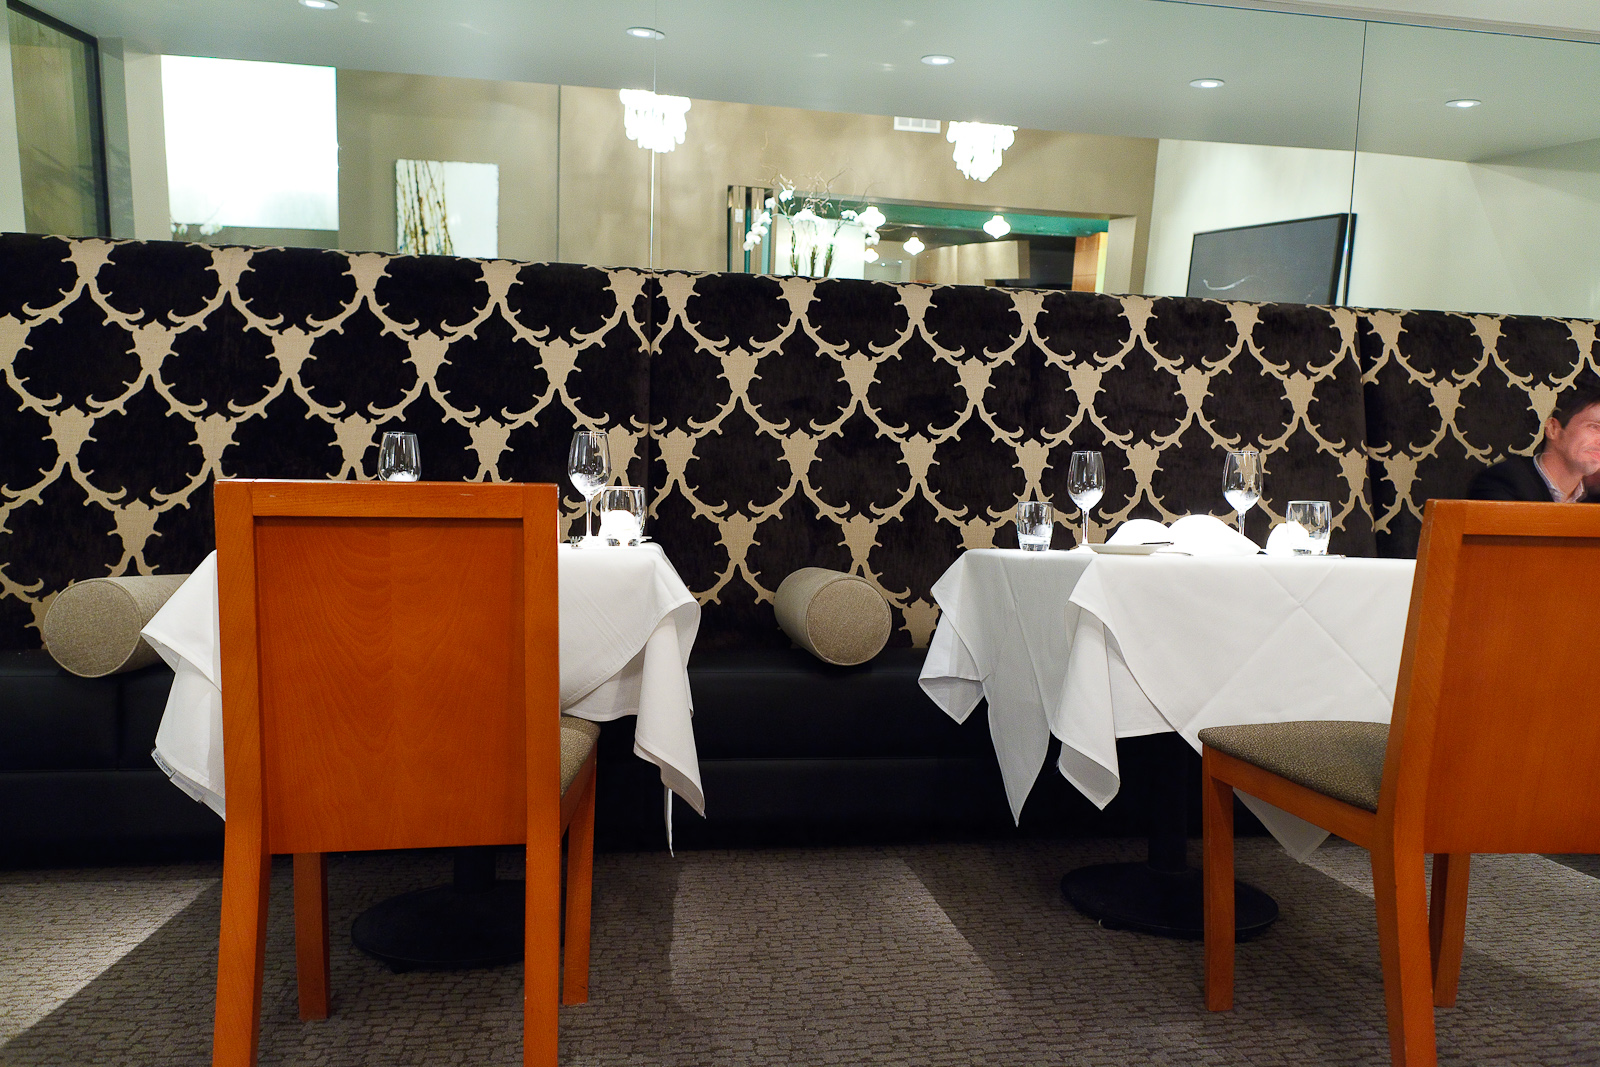 Benches in the new dining room